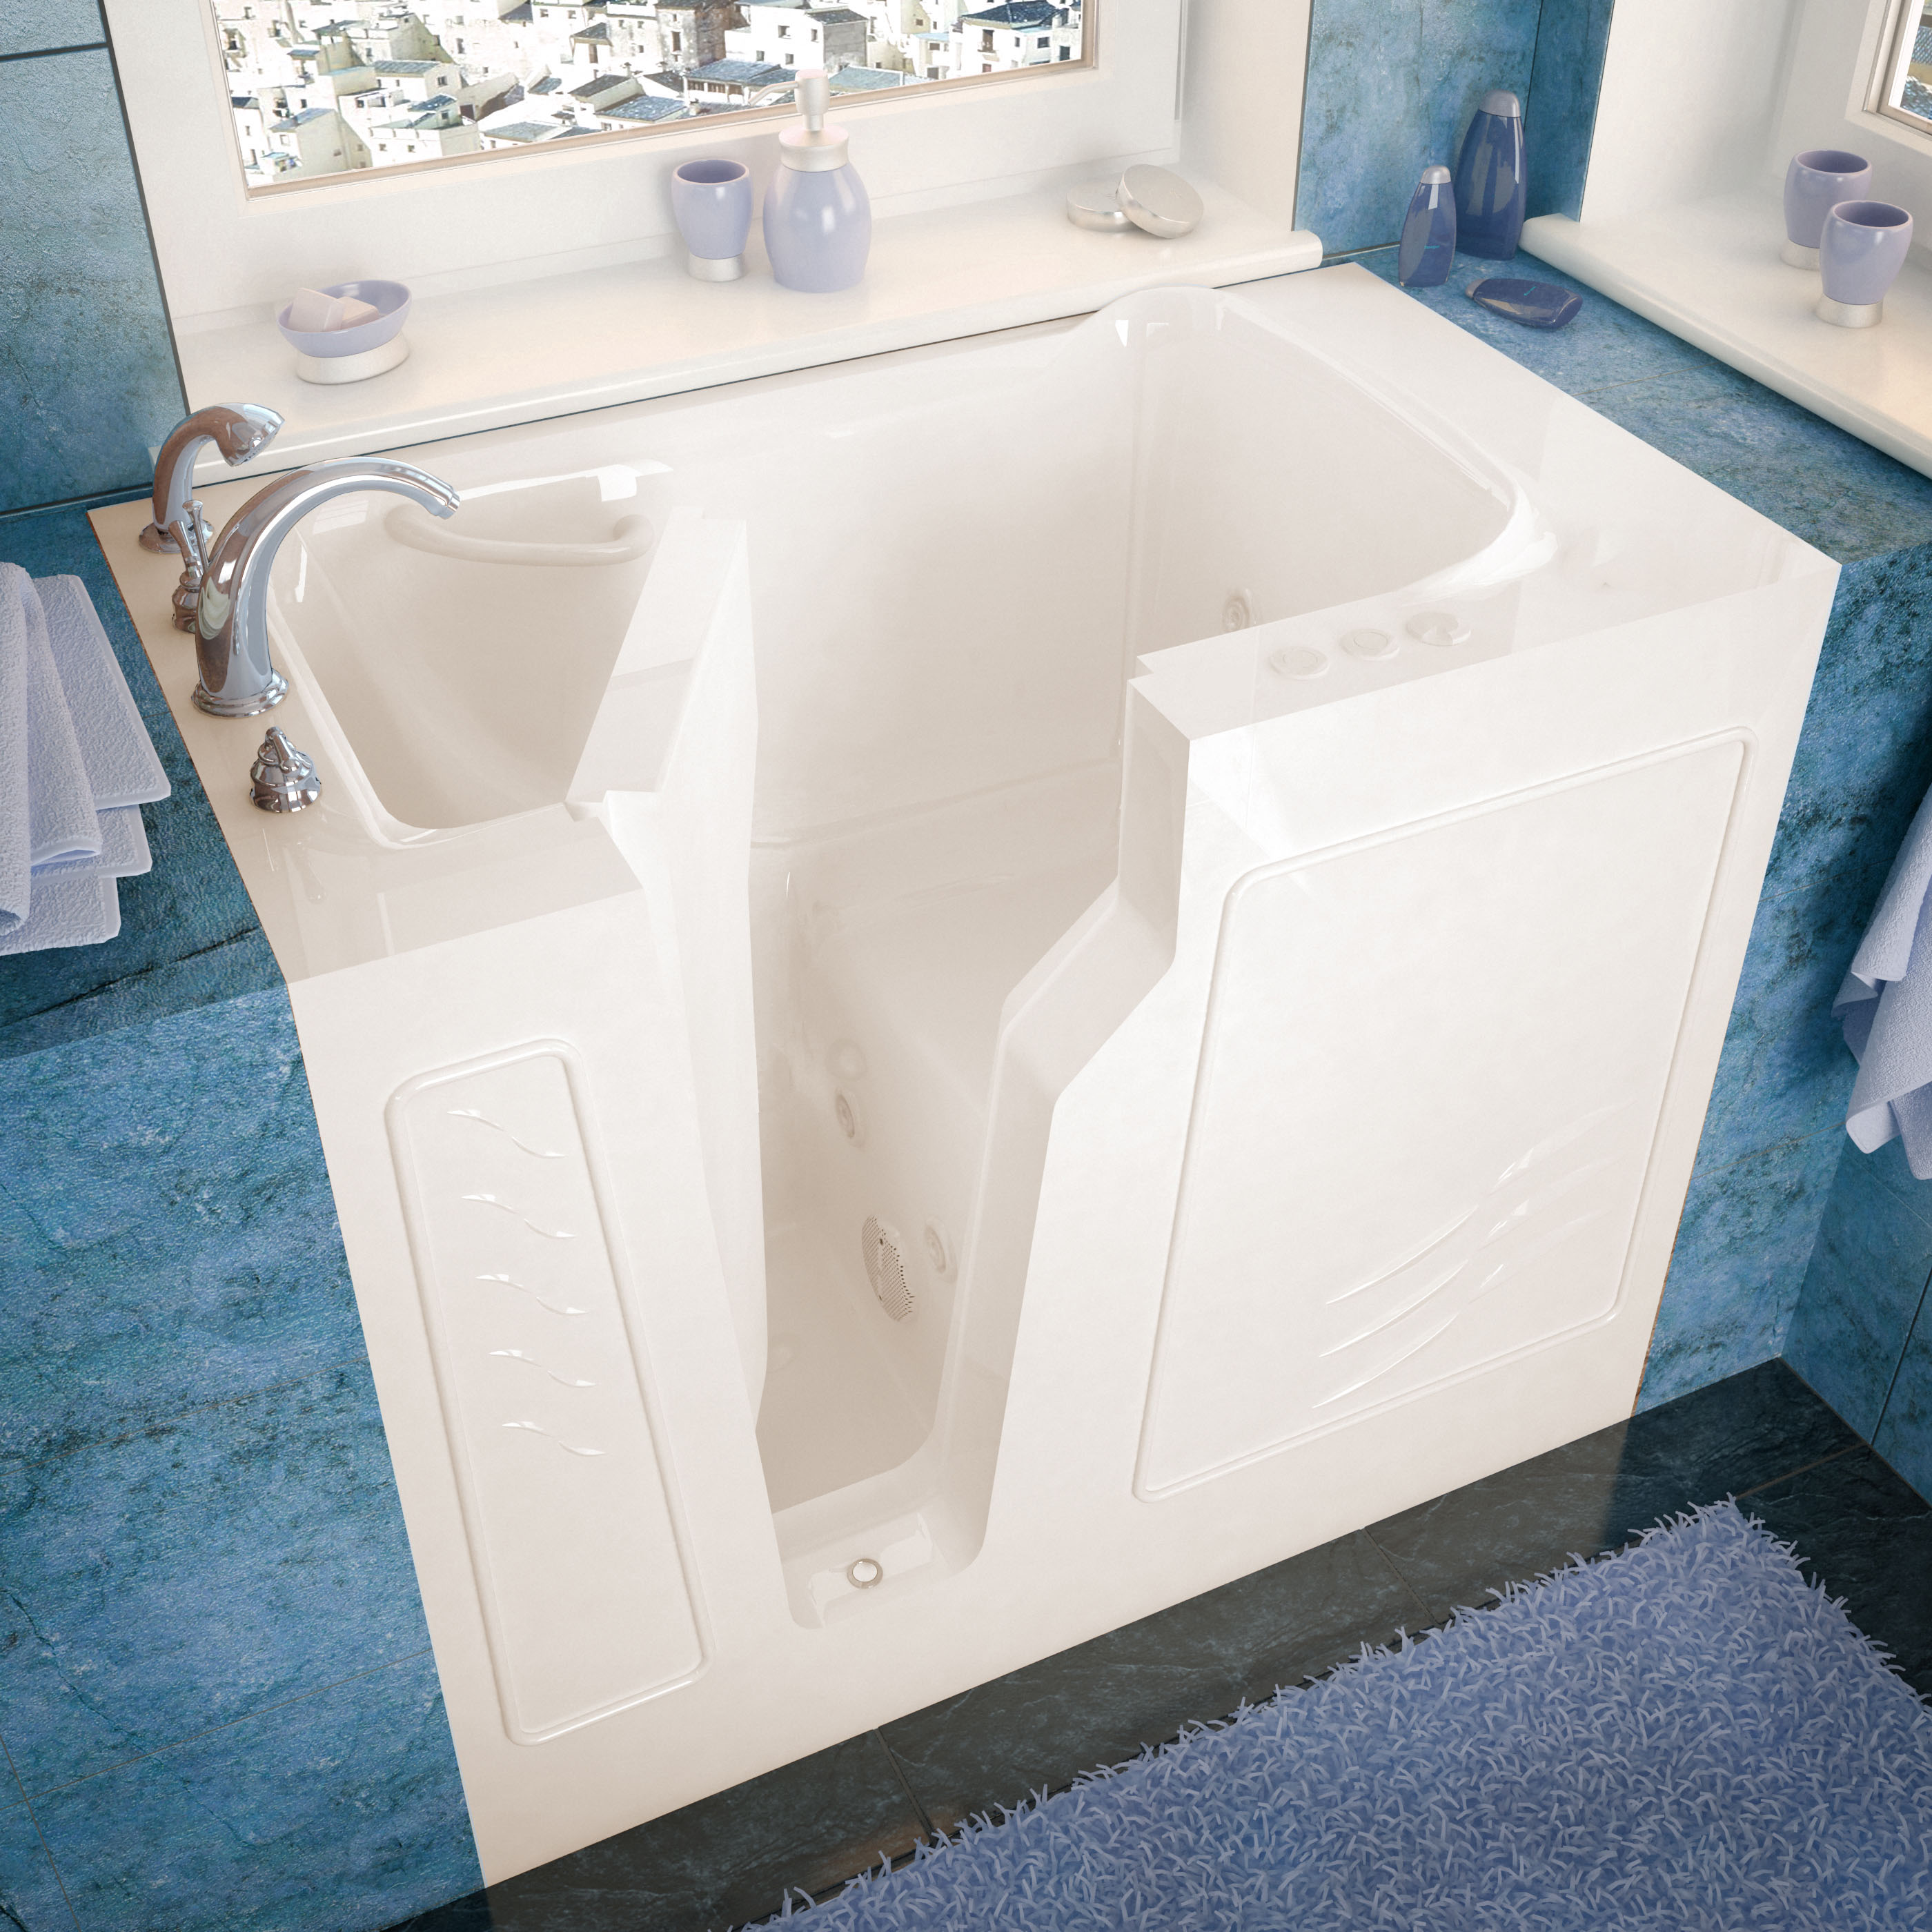 26x46 Left Drain Biscuit Whirlpool Jetted Walk-In Bathtub